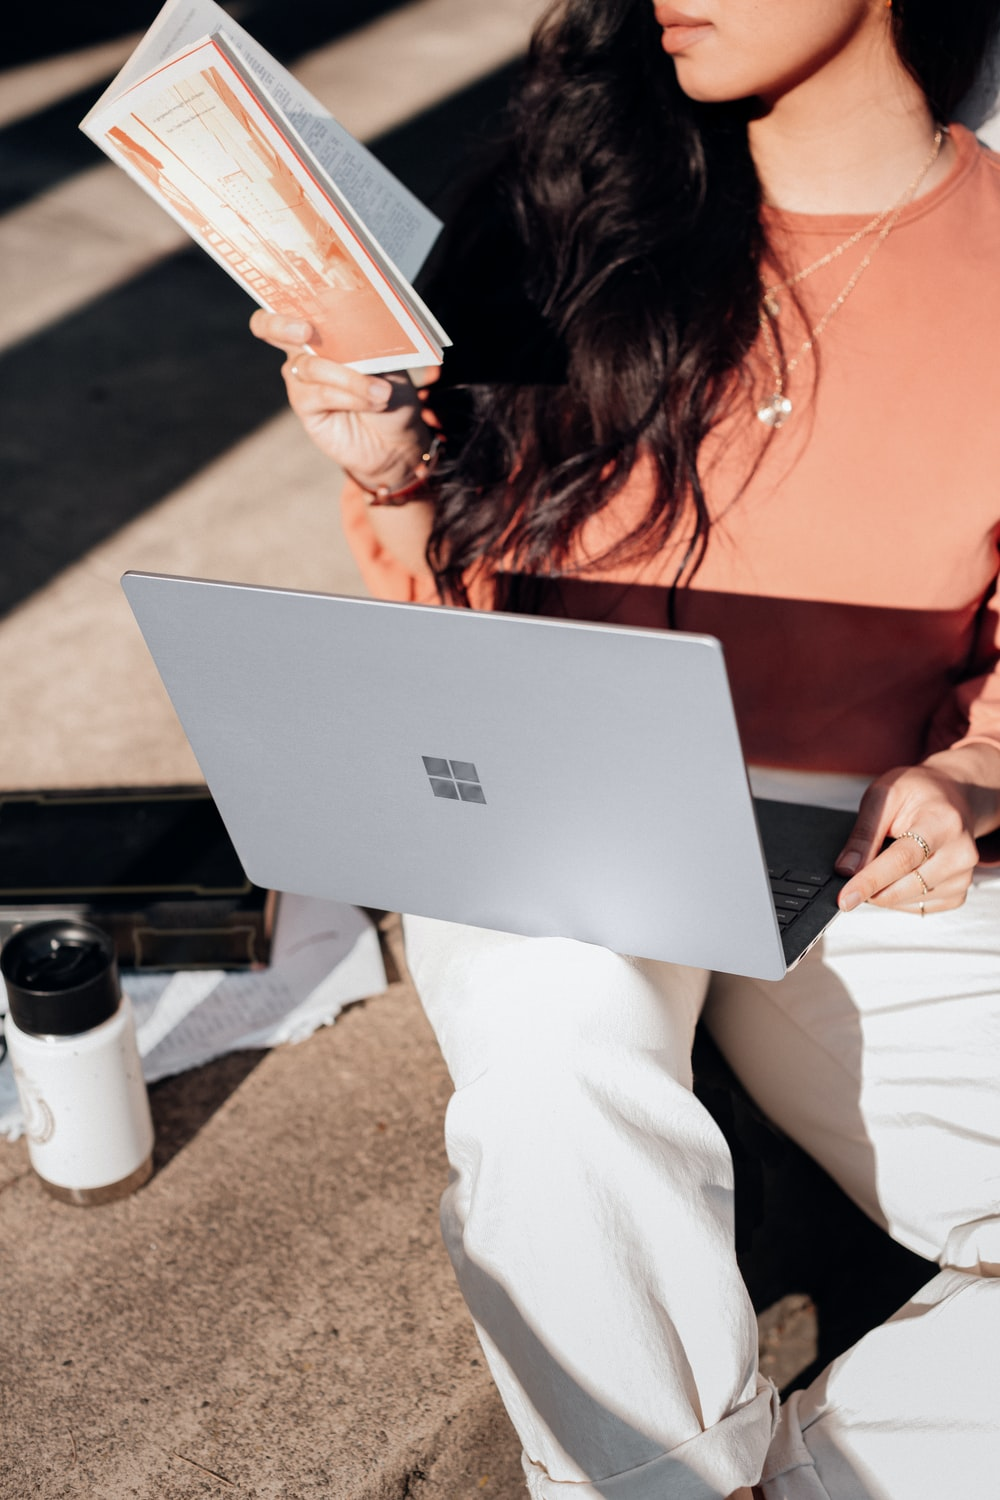 woman in orange shirt and white pants holding silver microsoft surface laptop computer